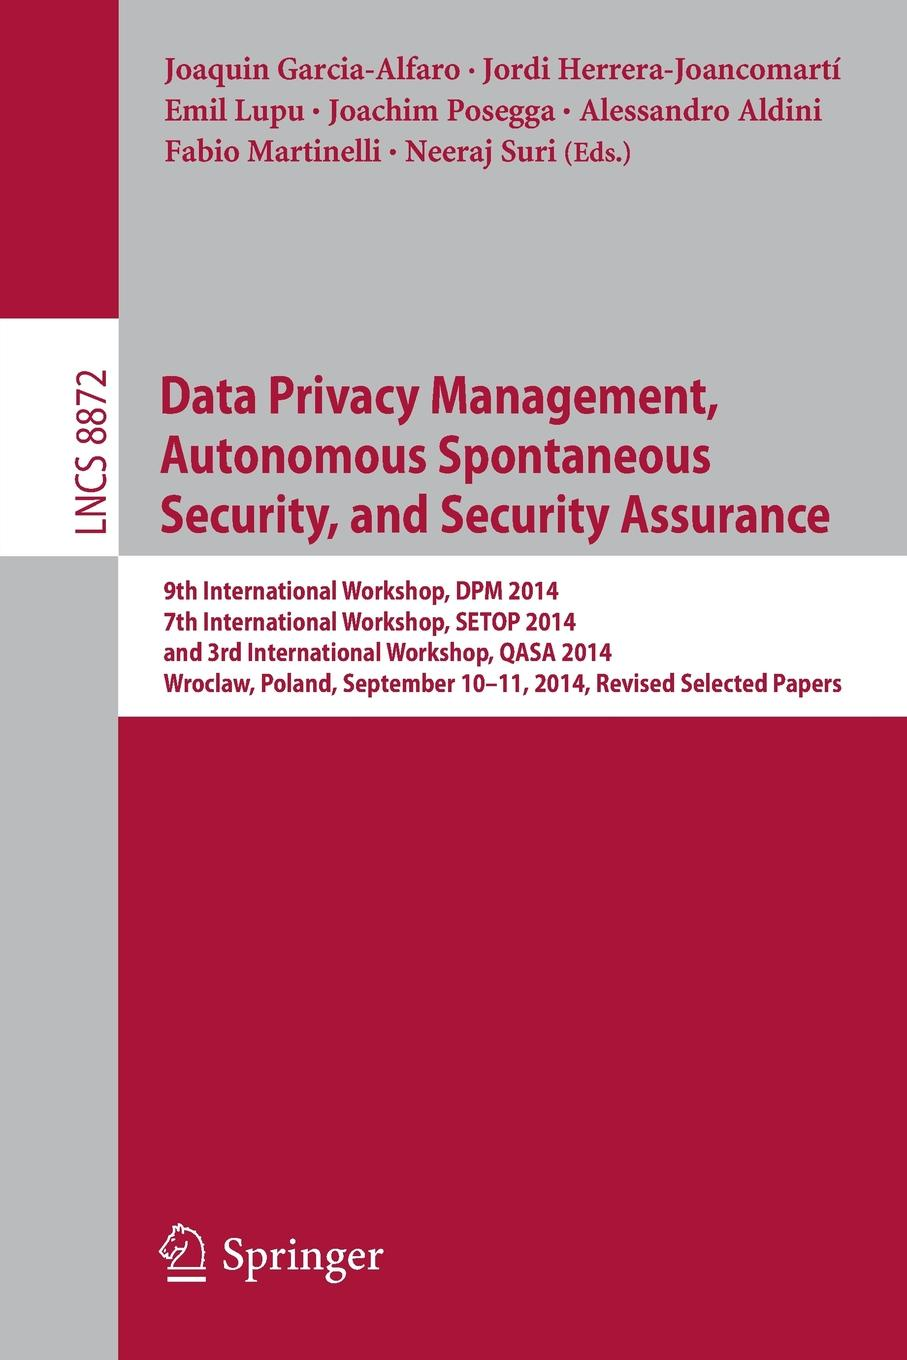 Data Privacy Management, Autonomous Spontaneous Security, and Security Assurance. 9th International Workshop, DPM 2014, 7th International Workshop, SETOP 2014, and 3rd International Workshop, QASA 2014, Wroclaw, Poland, September 10-11... the spontaneous city